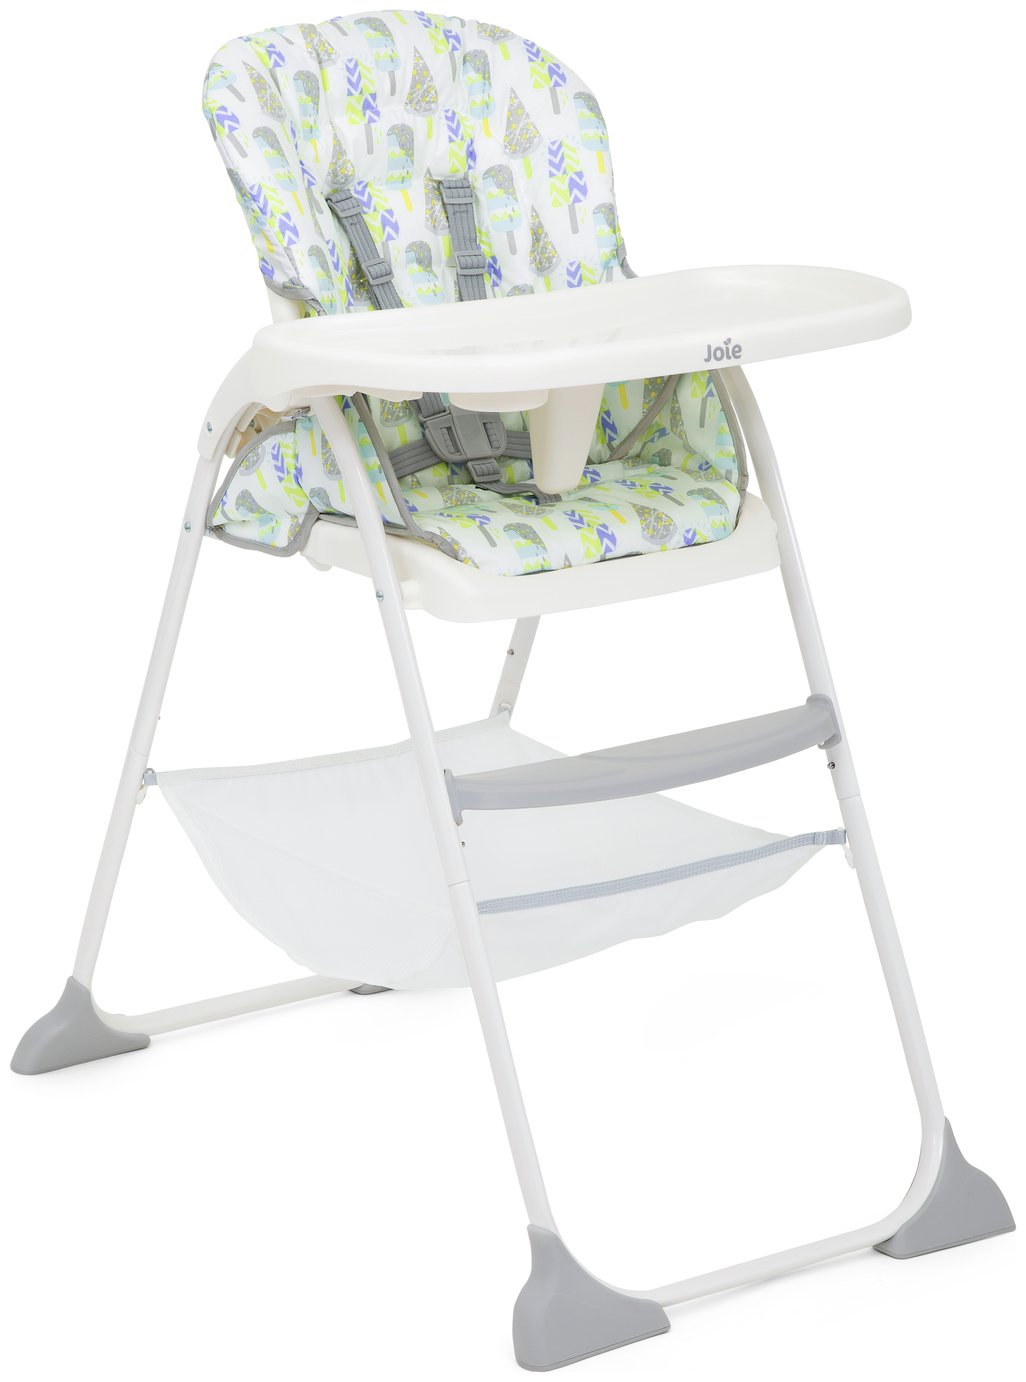 Joie Mimzy Eco Highchair - Popsicle